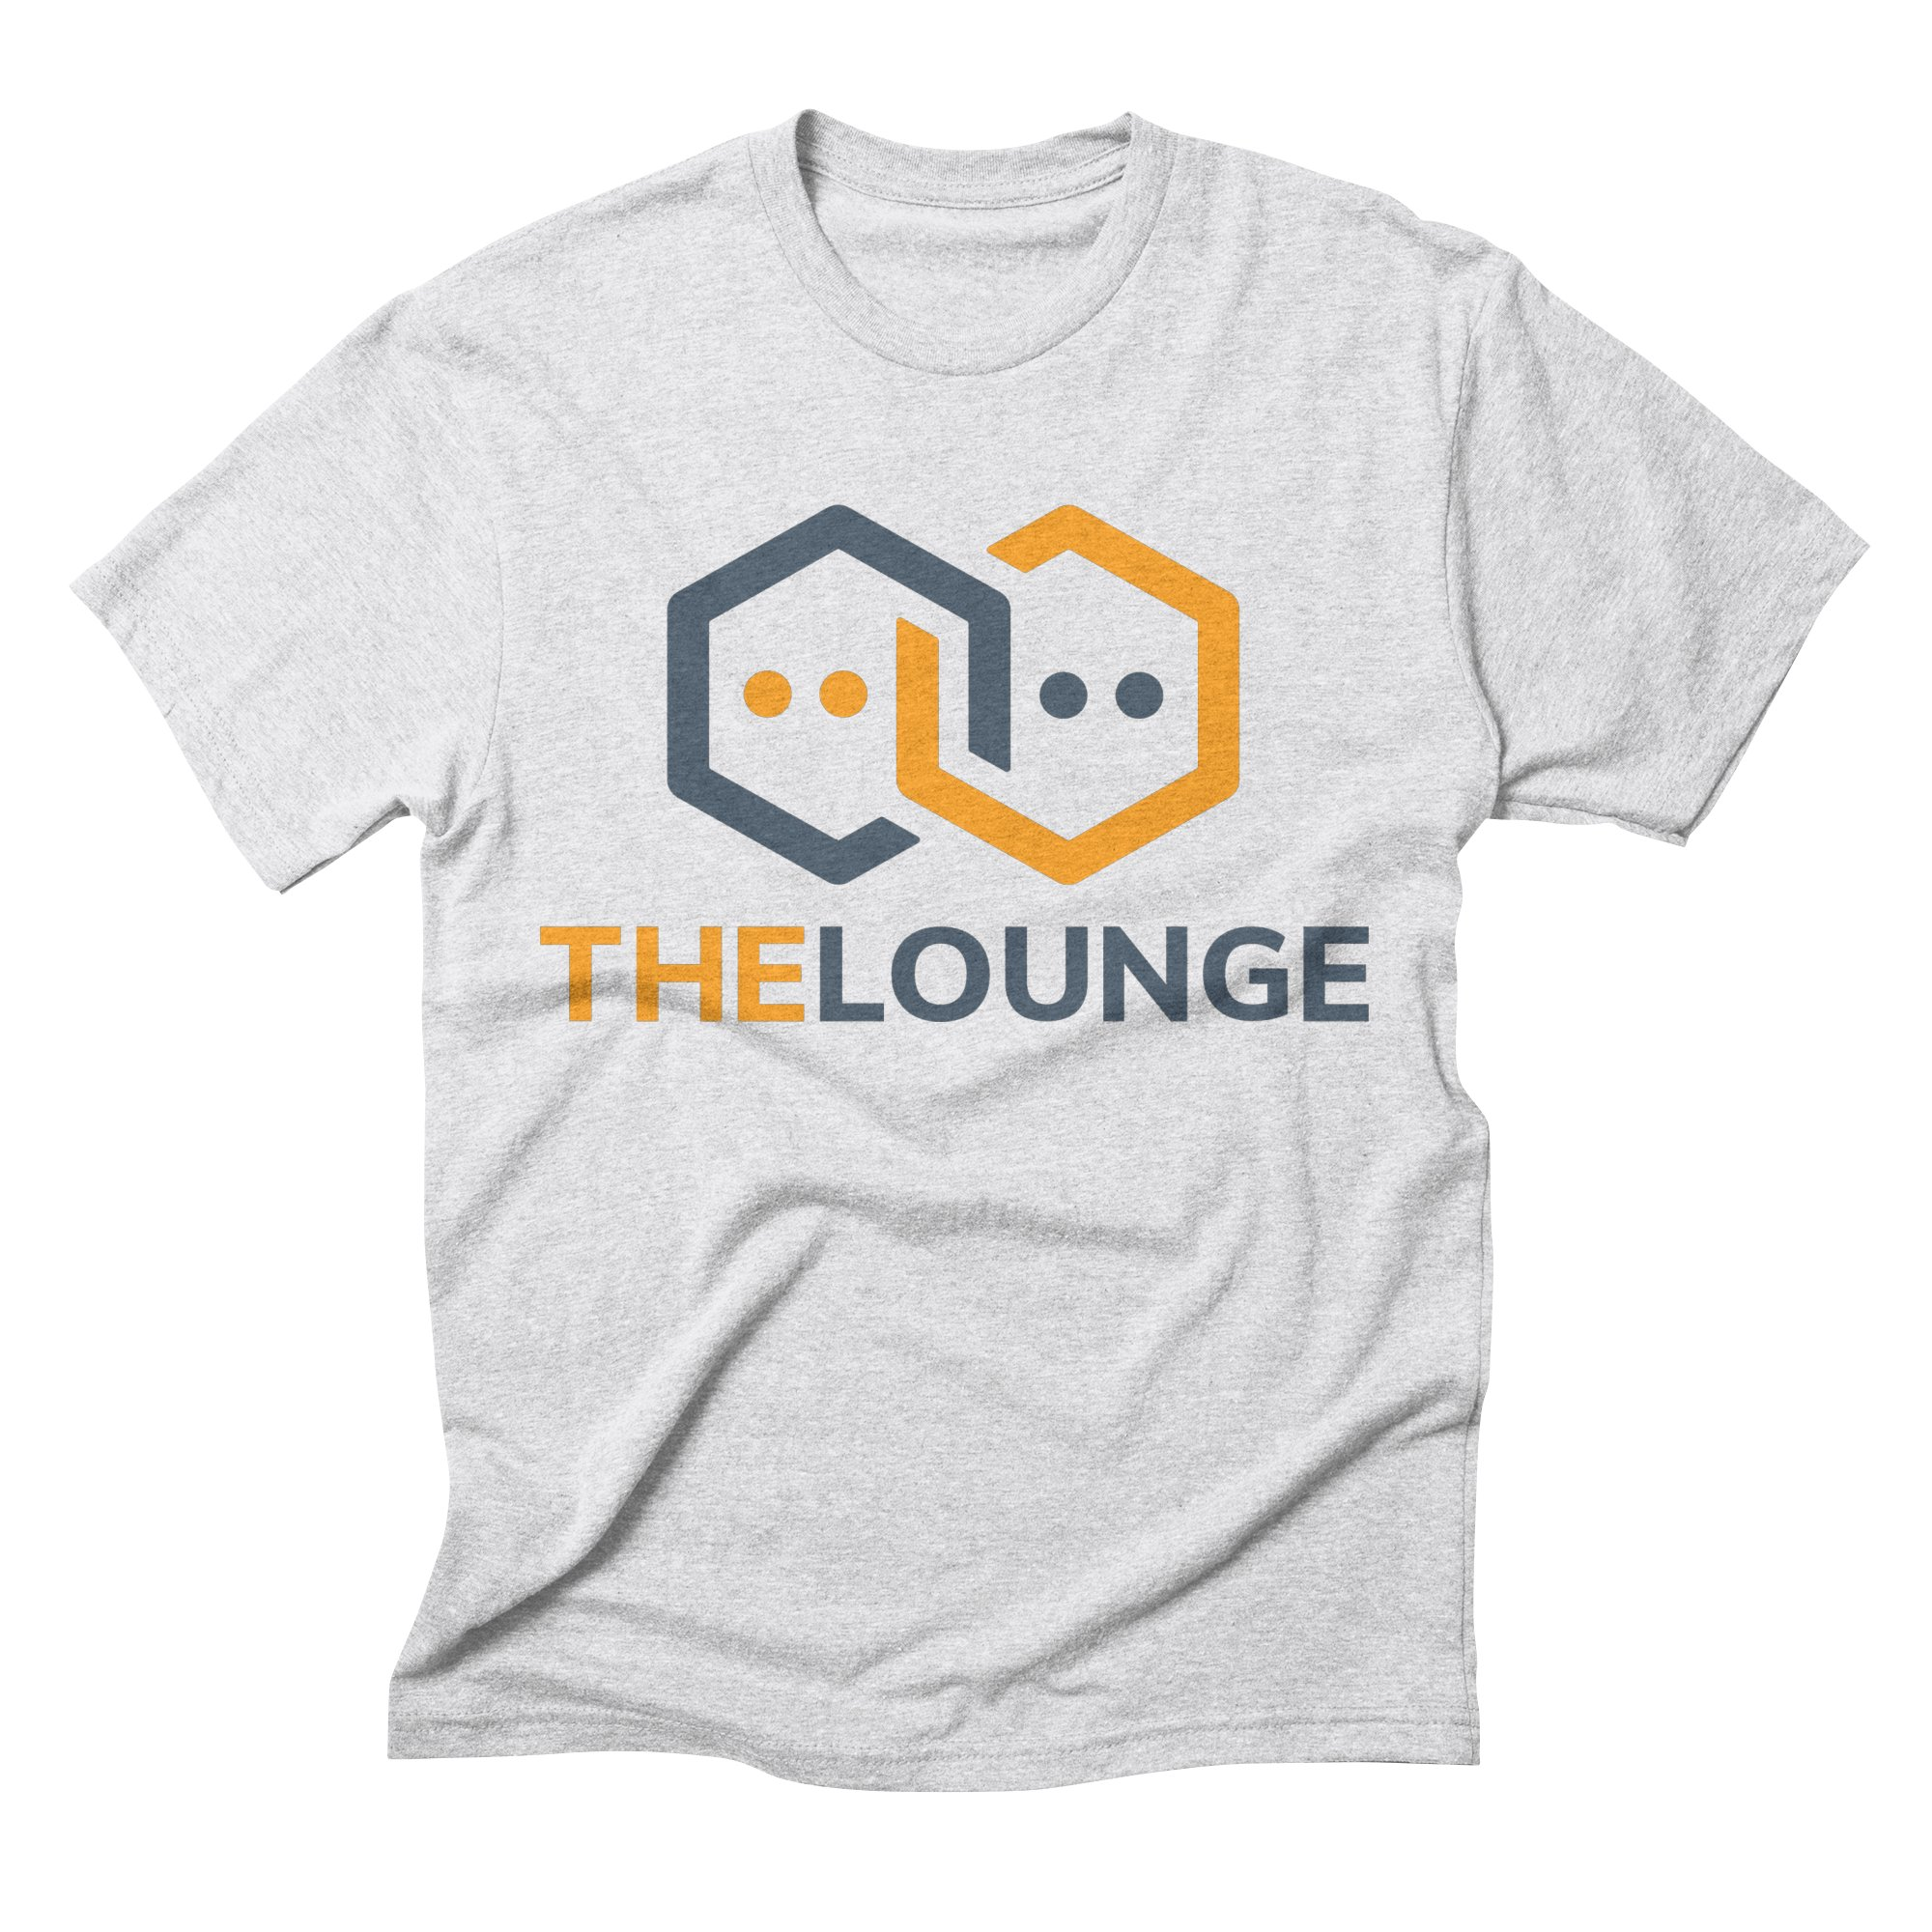 White t-shirt with The Lounge logo